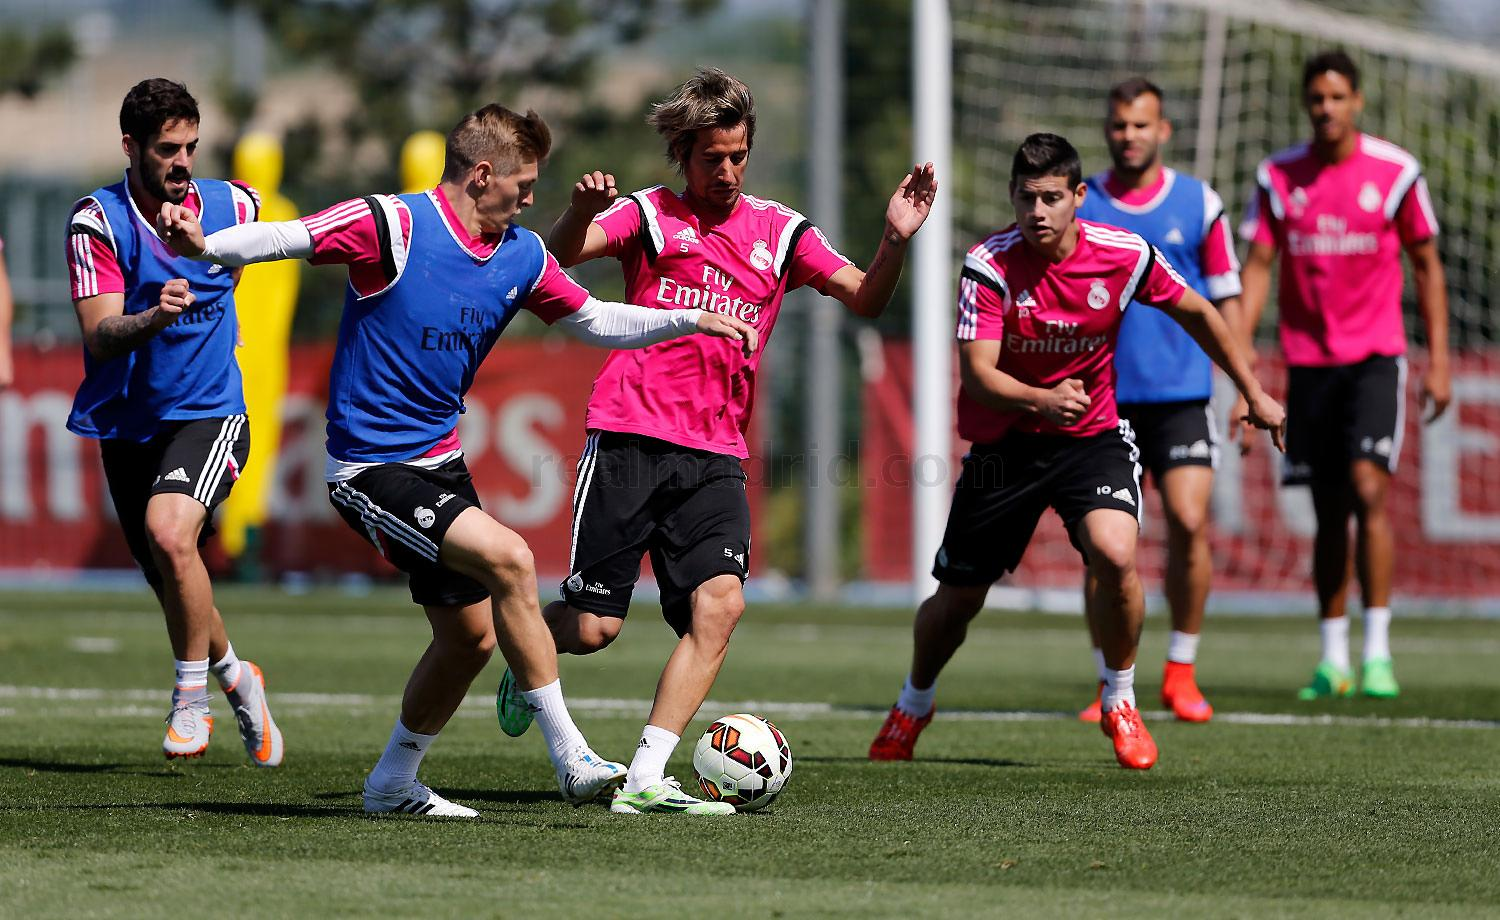 Real Madrid - Entrenamiento del Real Madrid - 20-05-2015